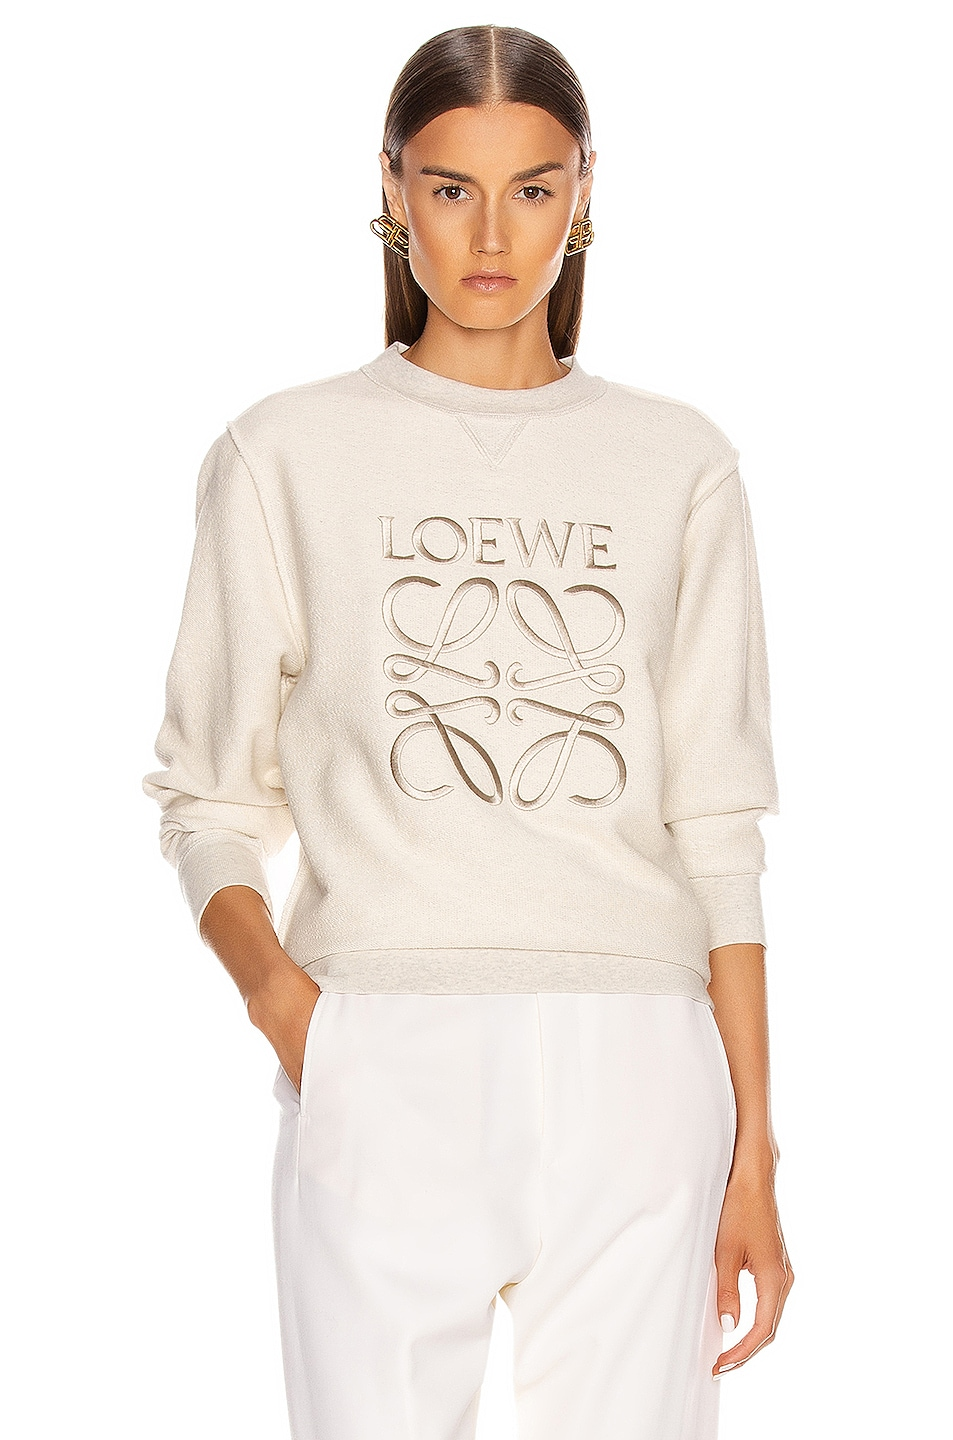 Image 1 of Loewe Anagram Sweatshirt in Ecru & Black